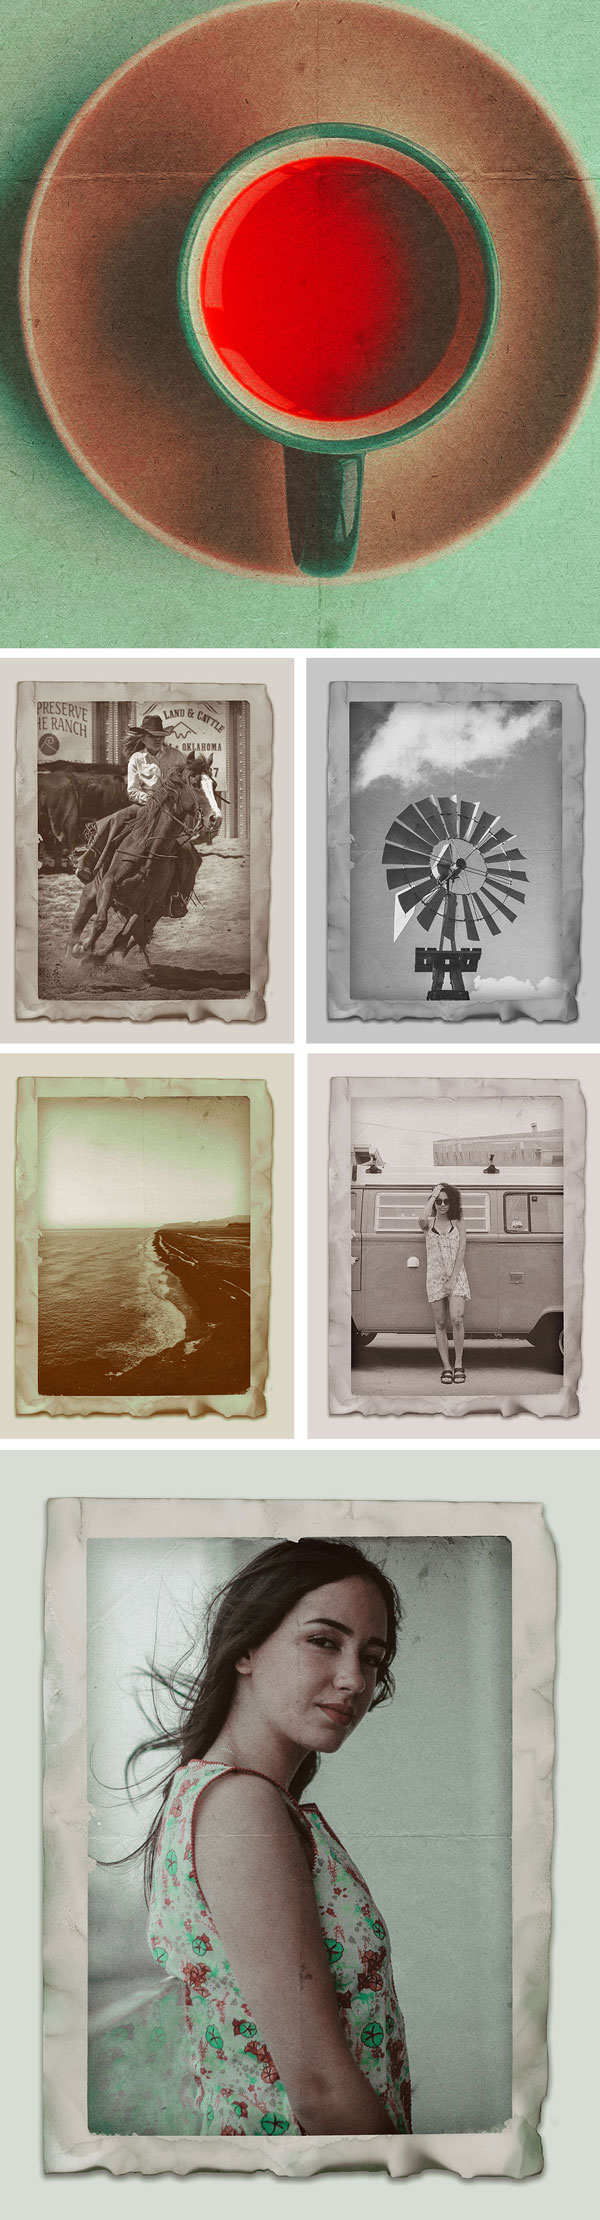 Free Vintage Photo Effects PSD